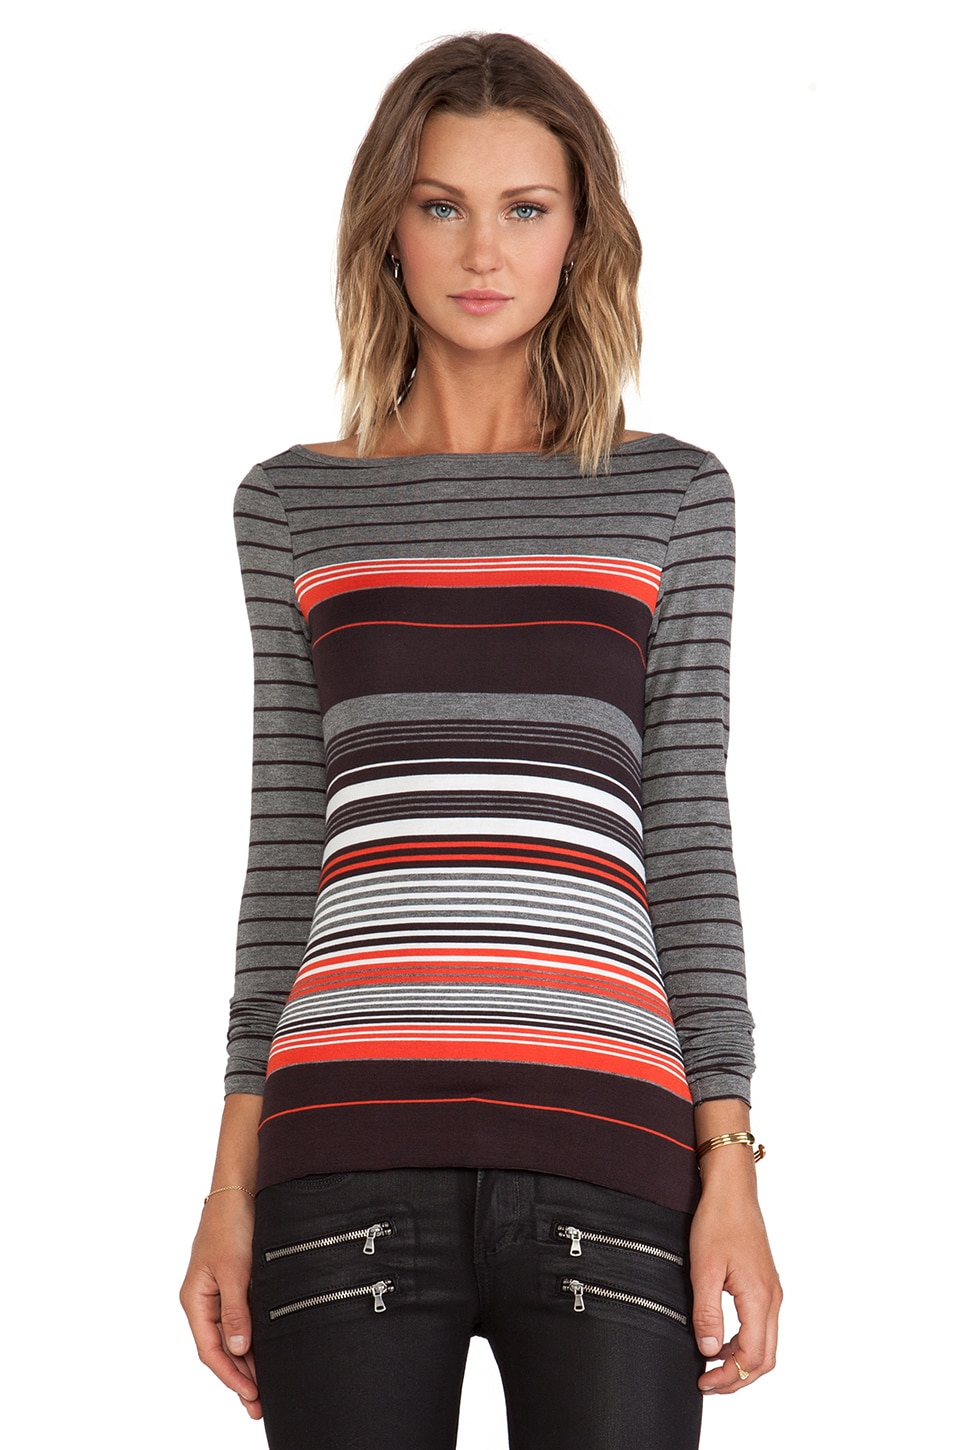 Bailey 44 Autumnal Top Multi Strupe in Multi Stripe